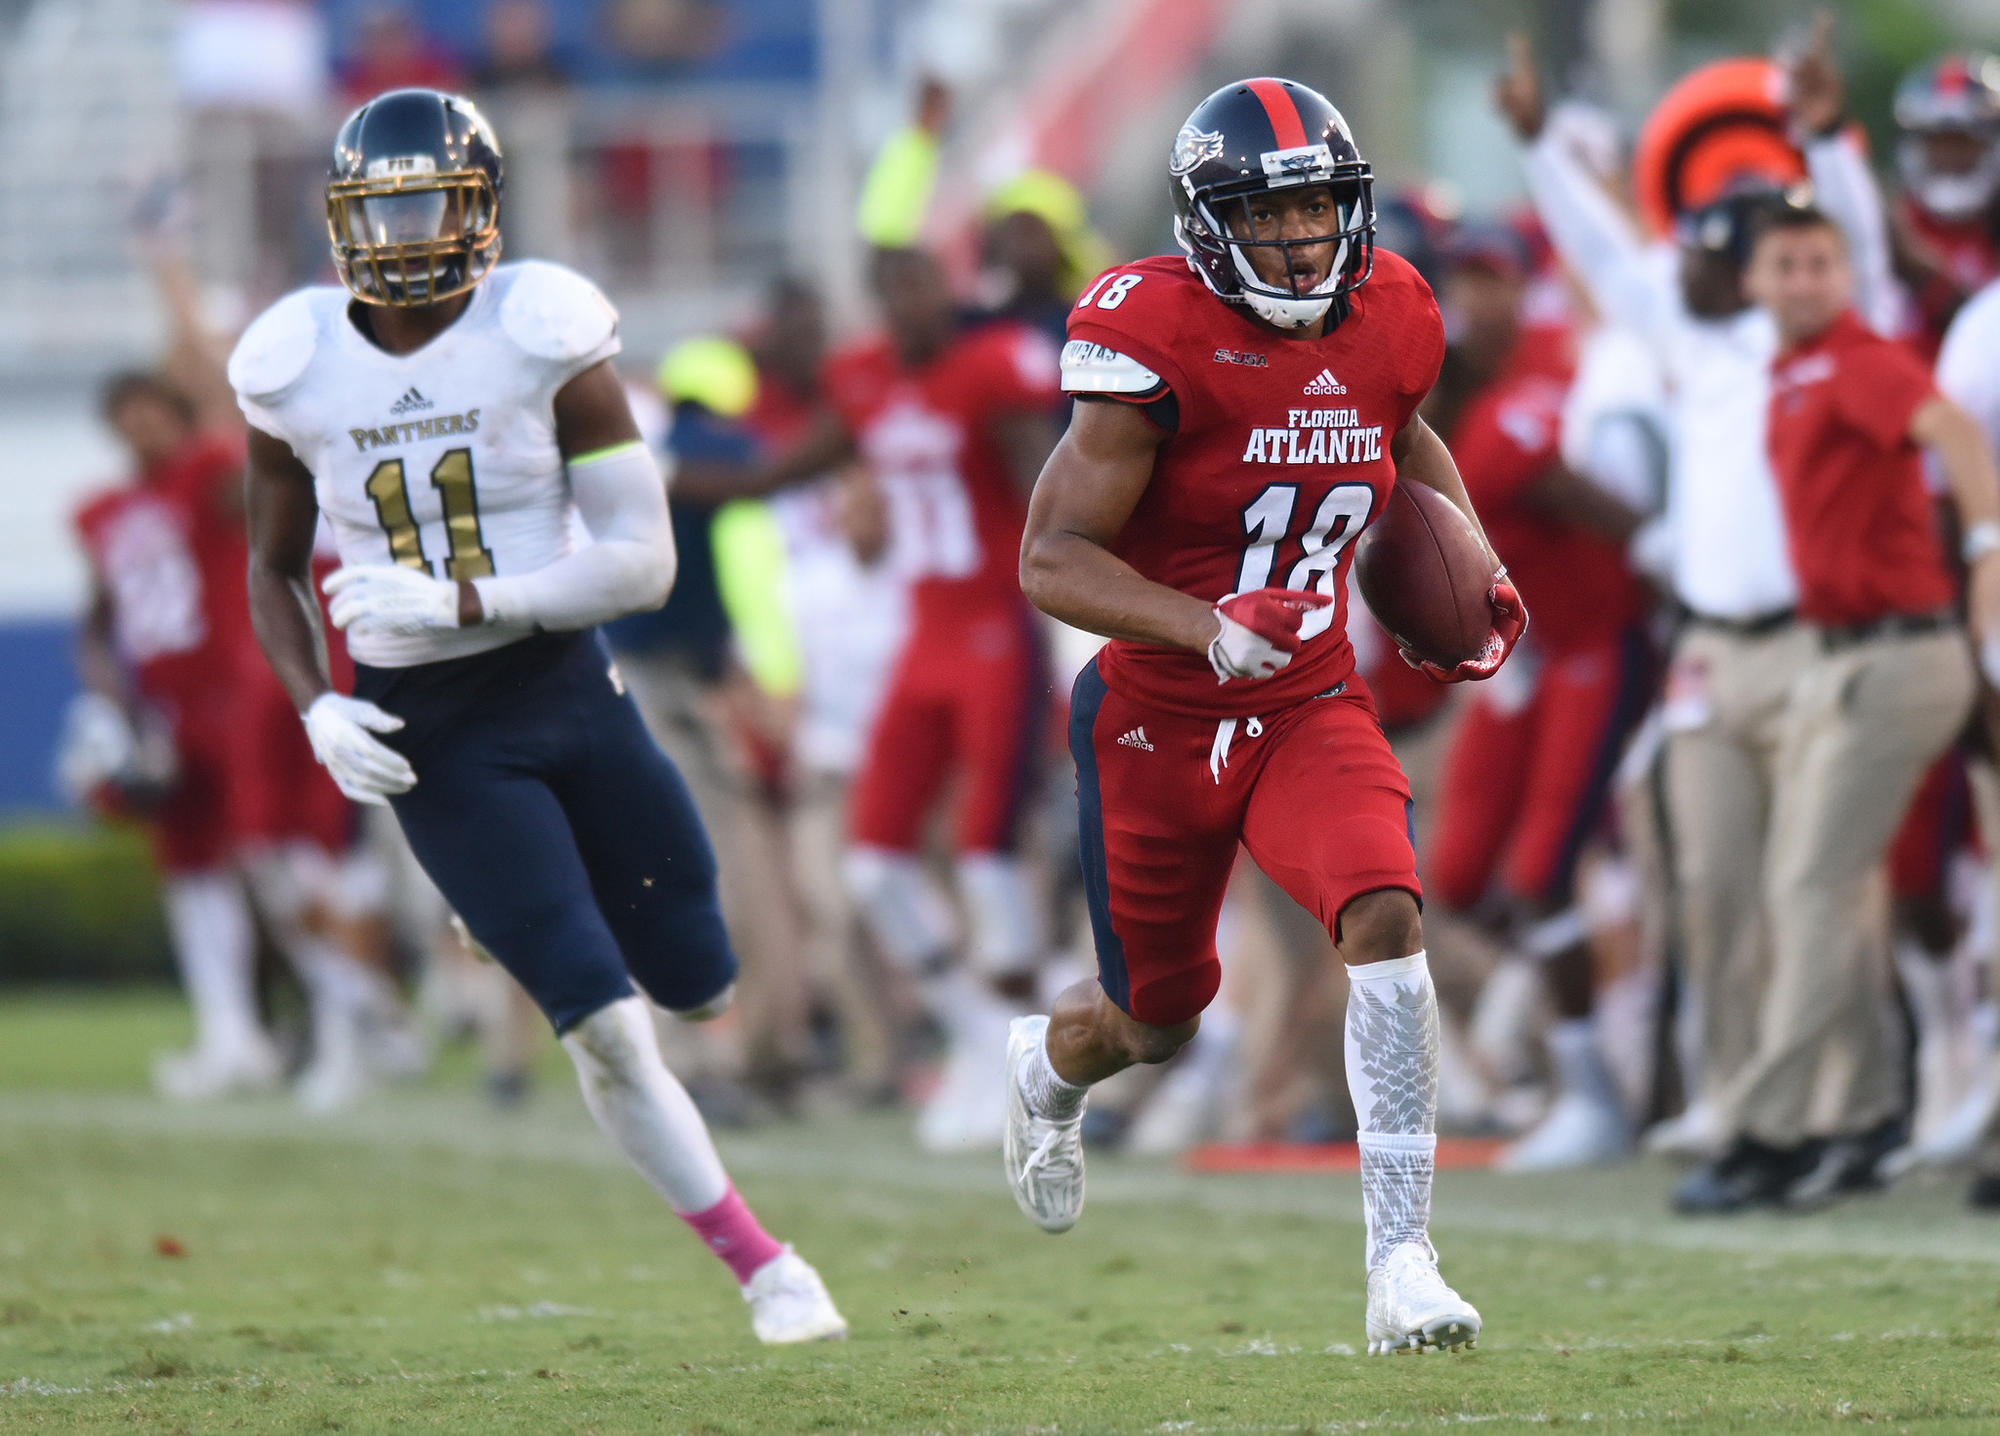 What key questions can Florida Atlantic expect at Conference USA media days?